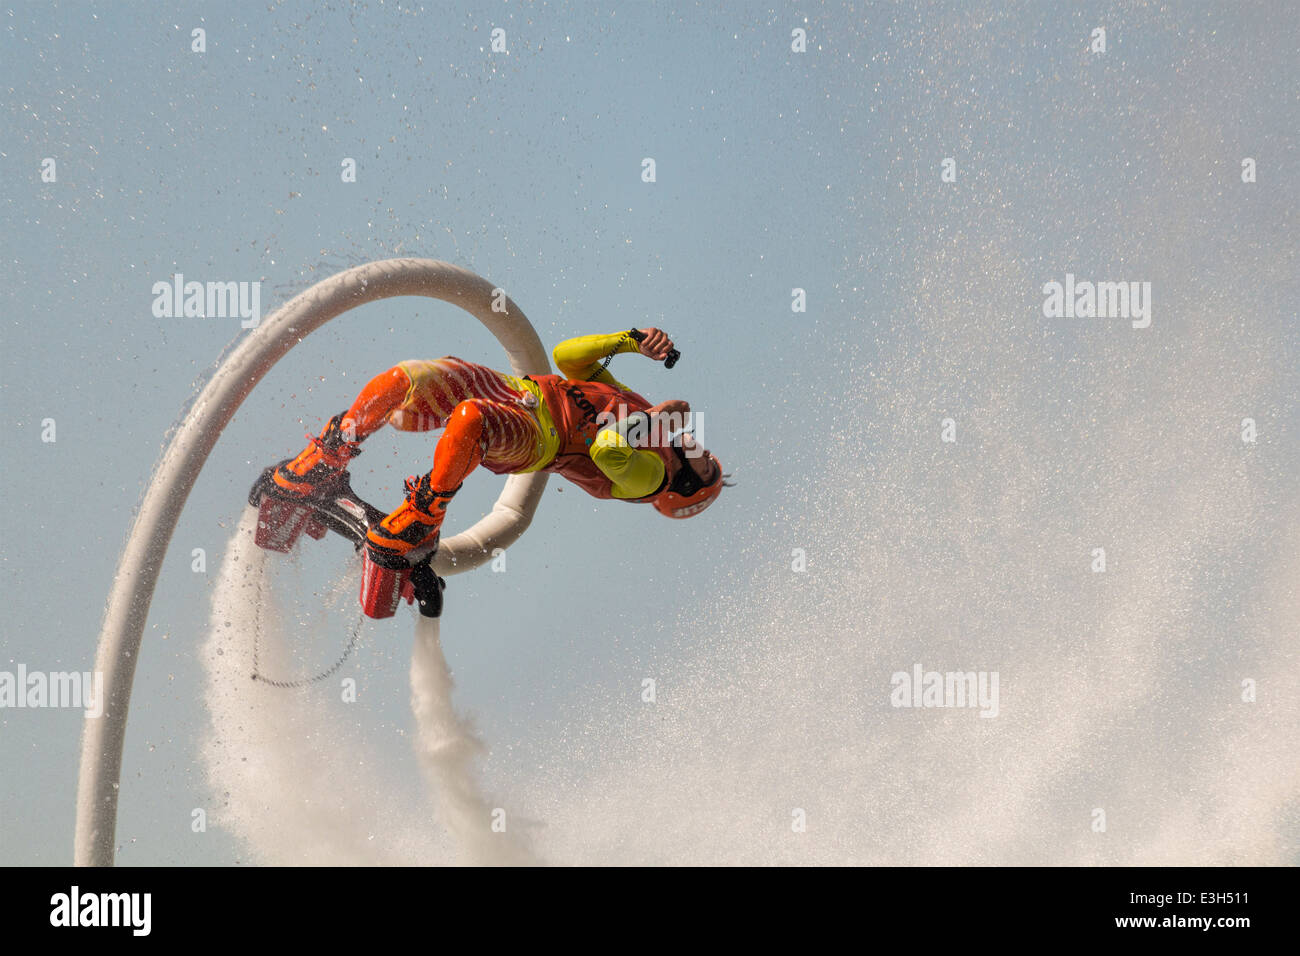 male-flyboarder-doing-a-backflip-at-the-